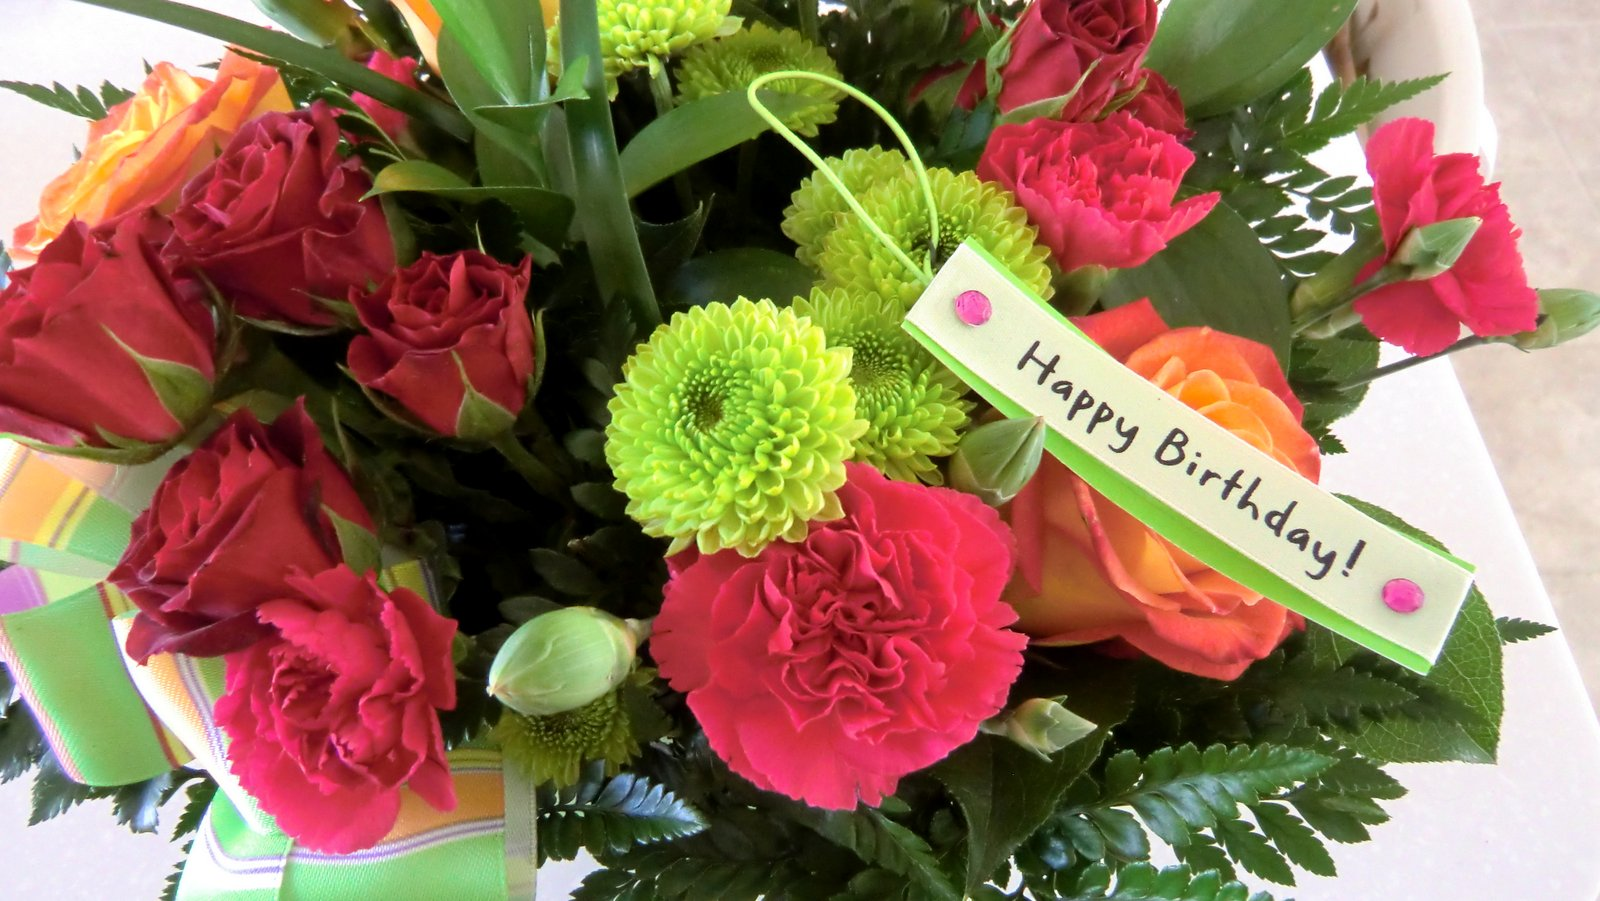 birthday wish with flower images ; CIMG7724